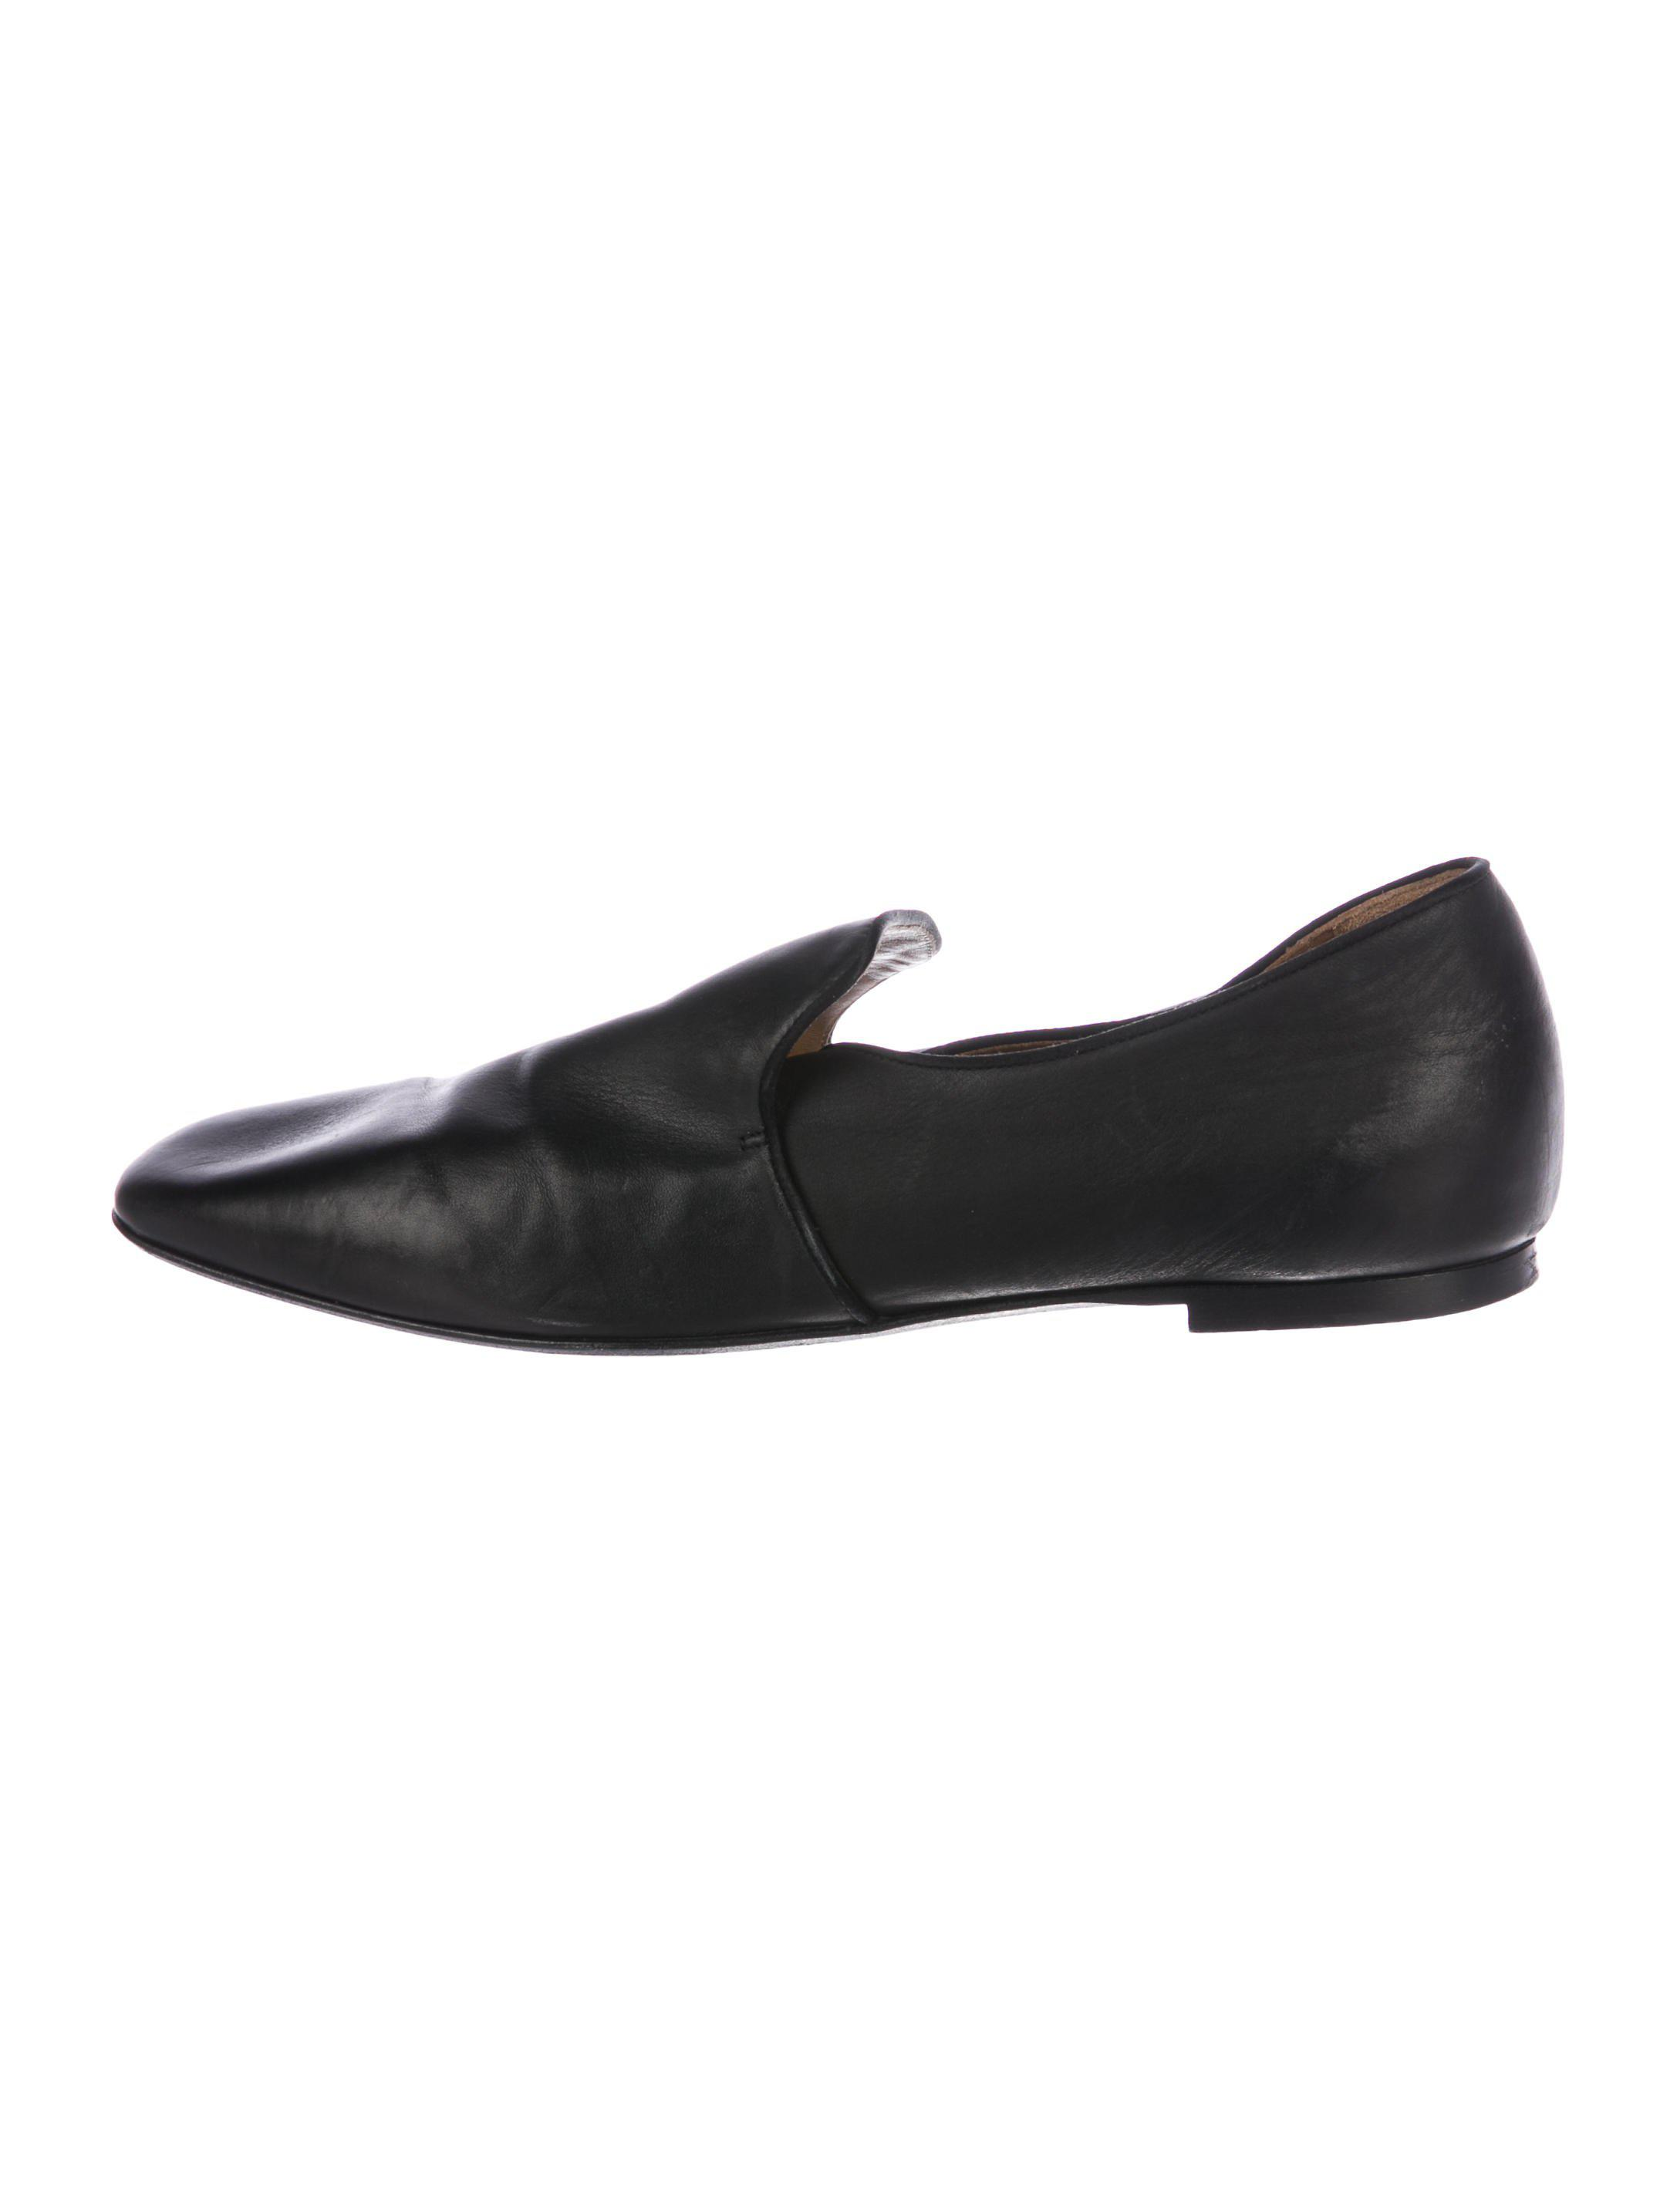 eaaa7b531ff Lyst - The Row Alys Leather Loafers in Black